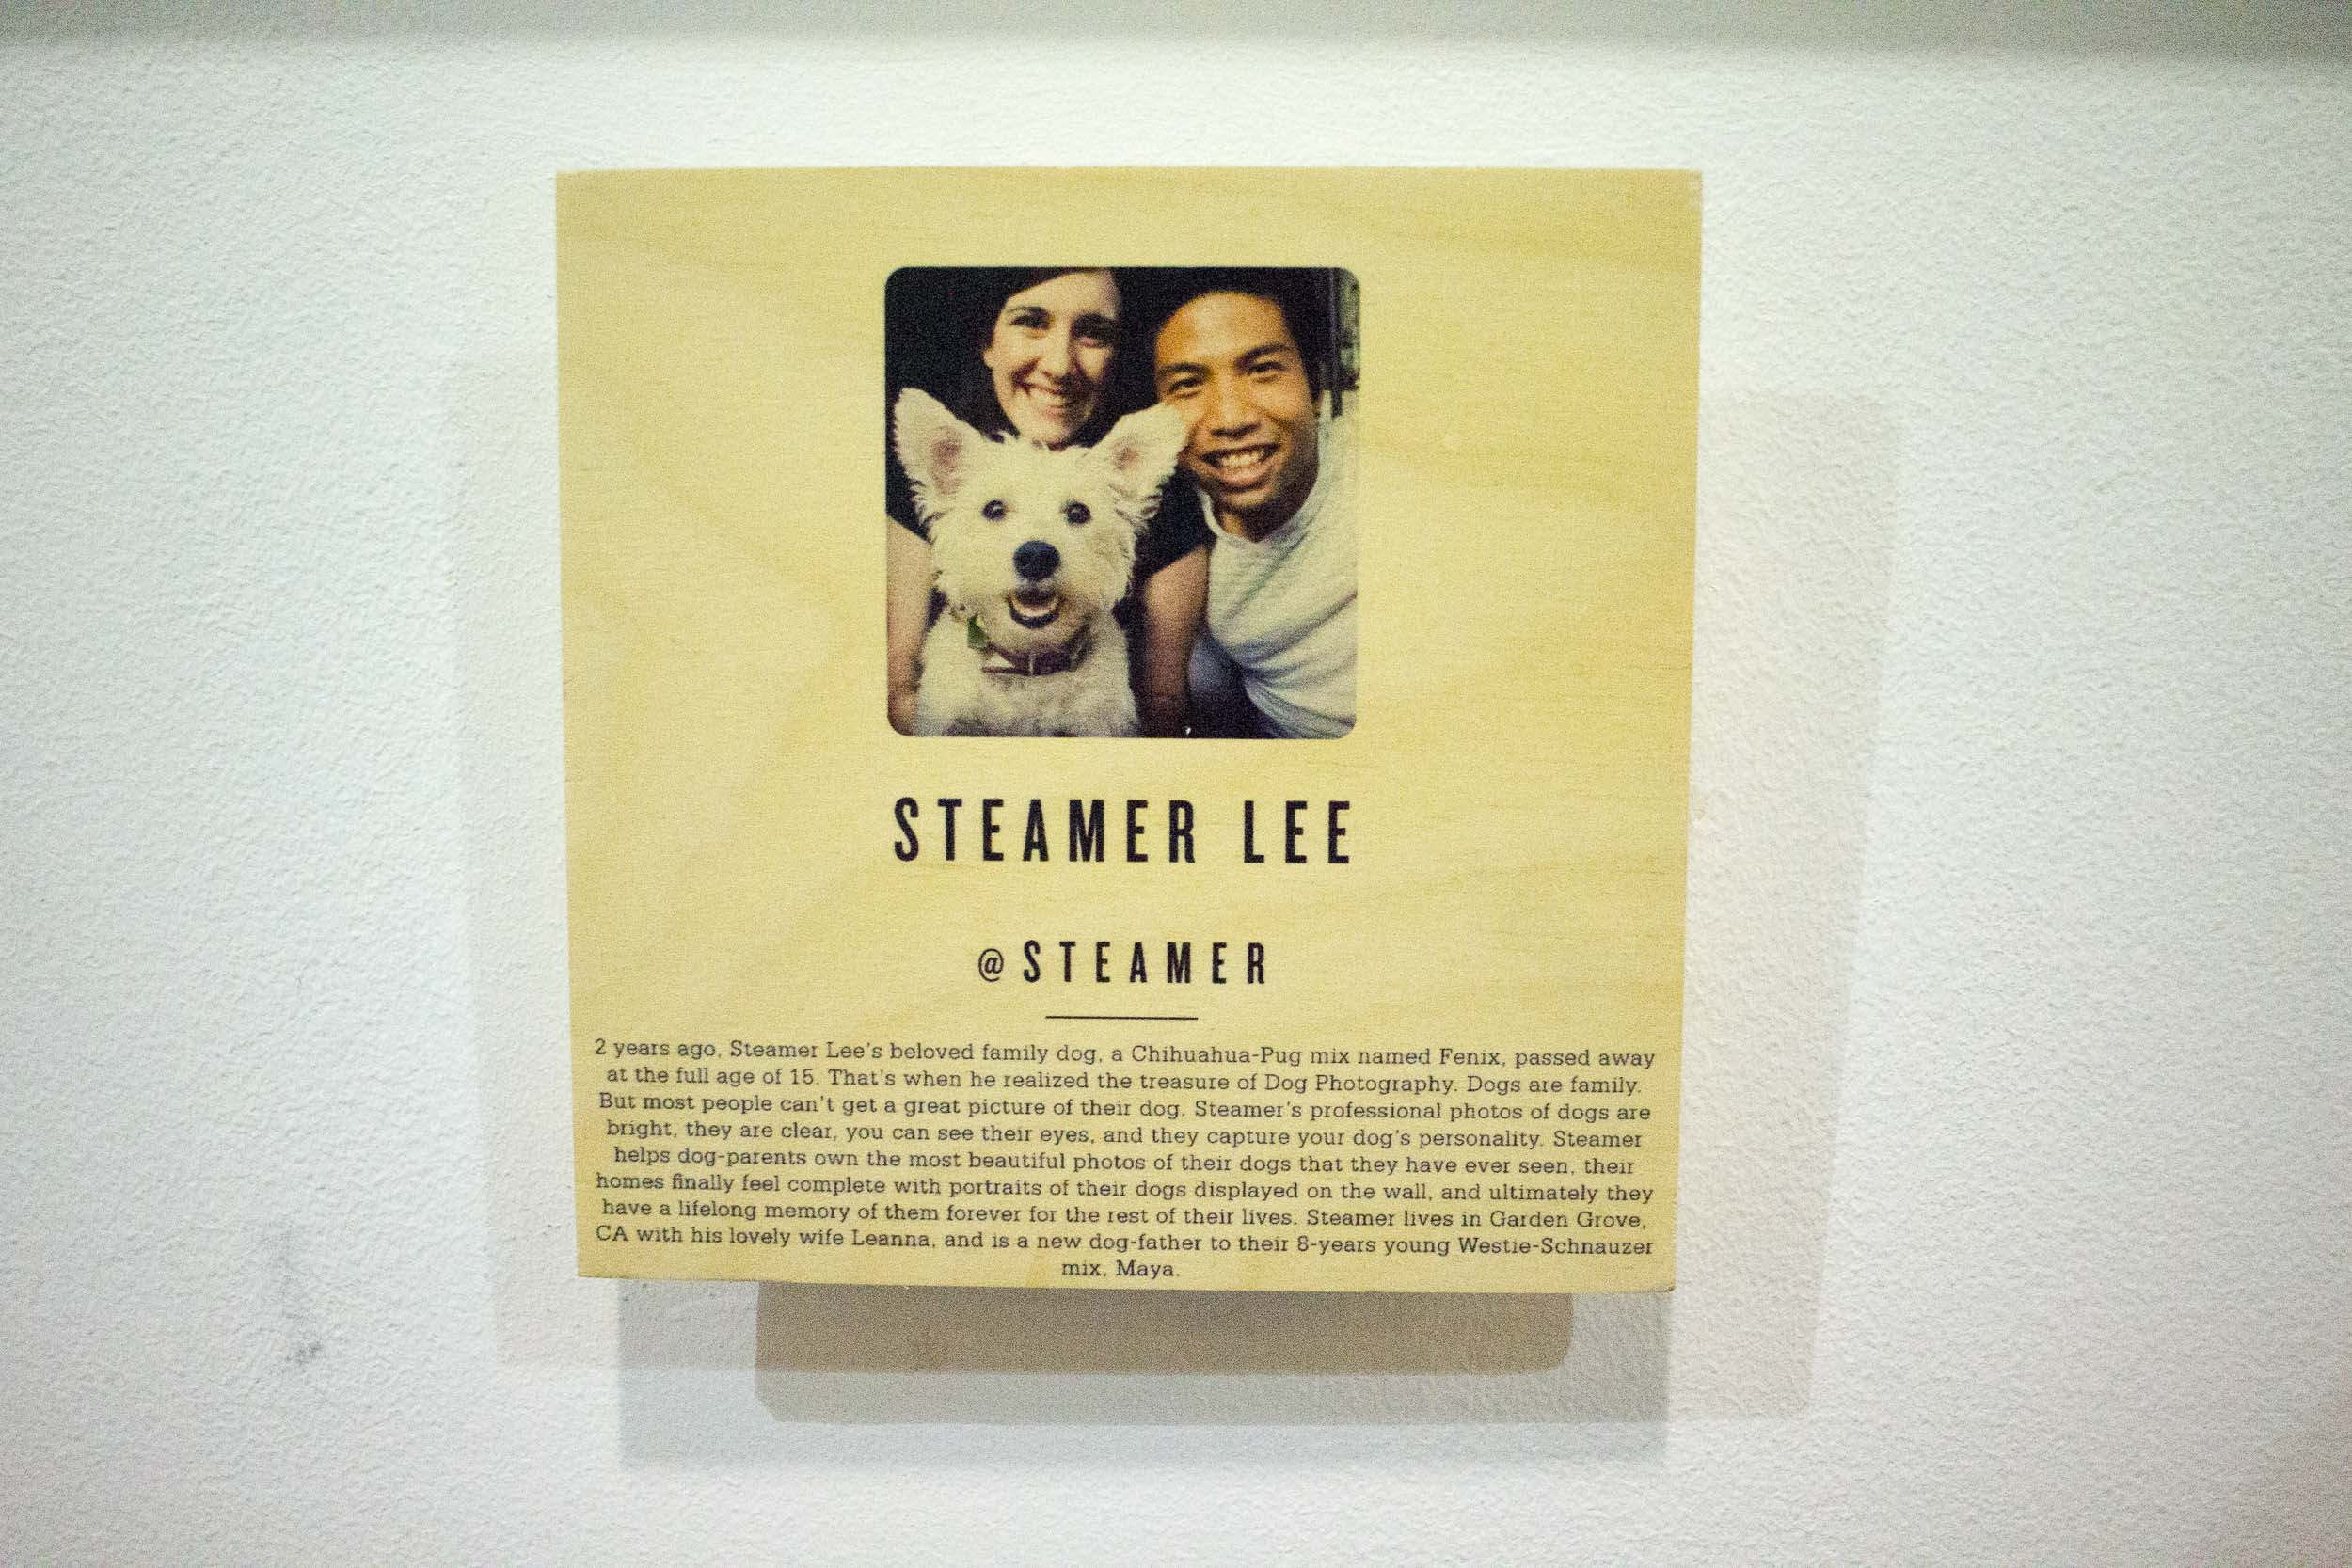 Steamer Lee Dog Photography - Focal Point Mission Viejo WoodSnap Exhibit - 5.jpg